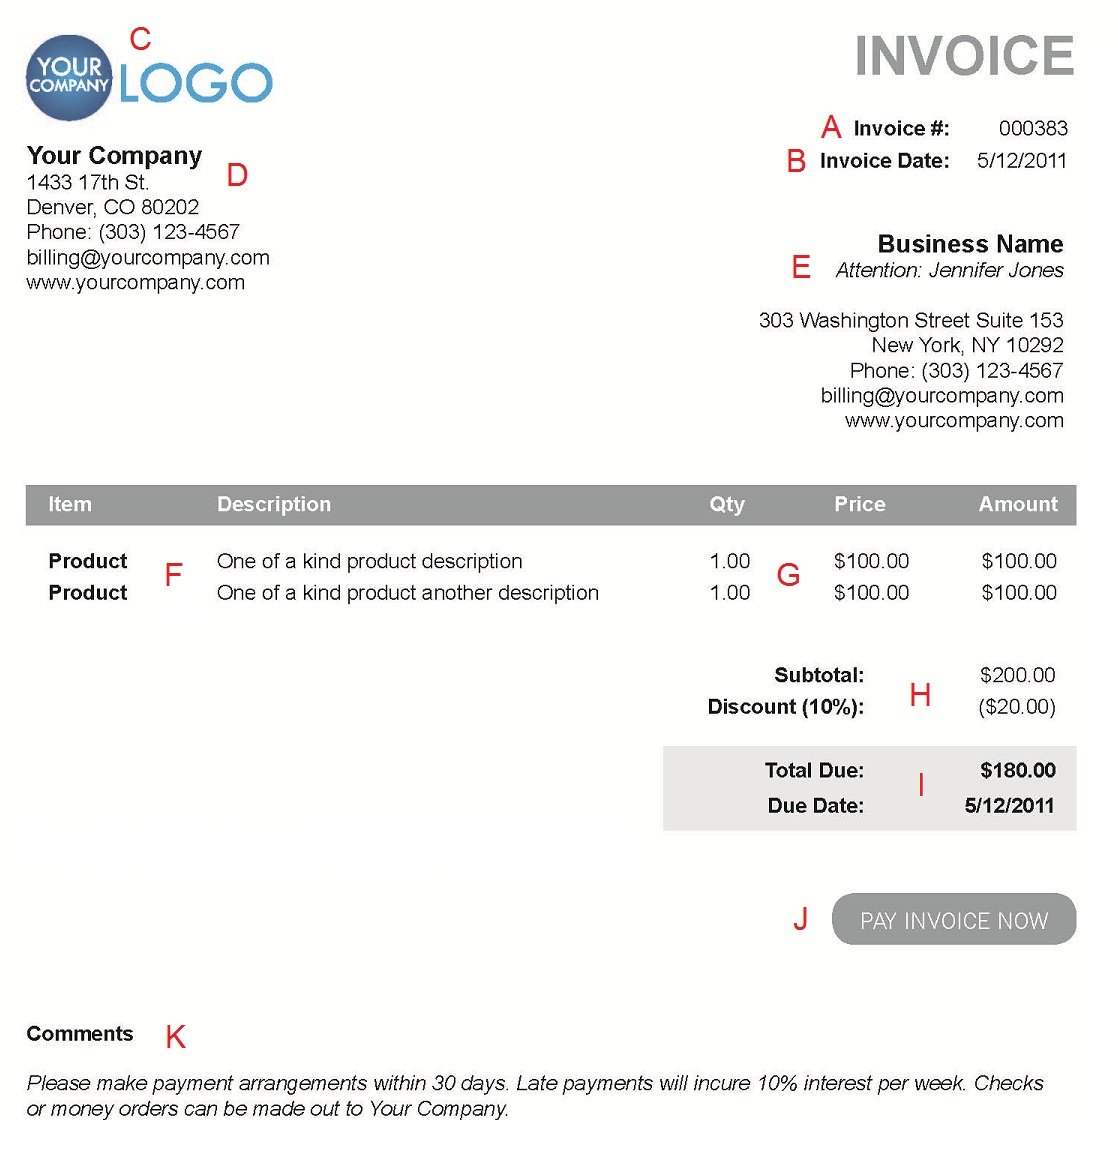 Atvingus  Inspiring The  Different Sections Of An Electronic Payment Invoice With Goodlooking A  With Cute Buy Receipt Book Also Cash Receipt Template Free In Addition How To Send A Certified Letter With Return Receipt And Sears Exchange Policy Without Receipt As Well As How Long To Save Receipts Additionally Make Fake Receipt From Paysimplecom With Atvingus  Goodlooking The  Different Sections Of An Electronic Payment Invoice With Cute A  And Inspiring Buy Receipt Book Also Cash Receipt Template Free In Addition How To Send A Certified Letter With Return Receipt From Paysimplecom